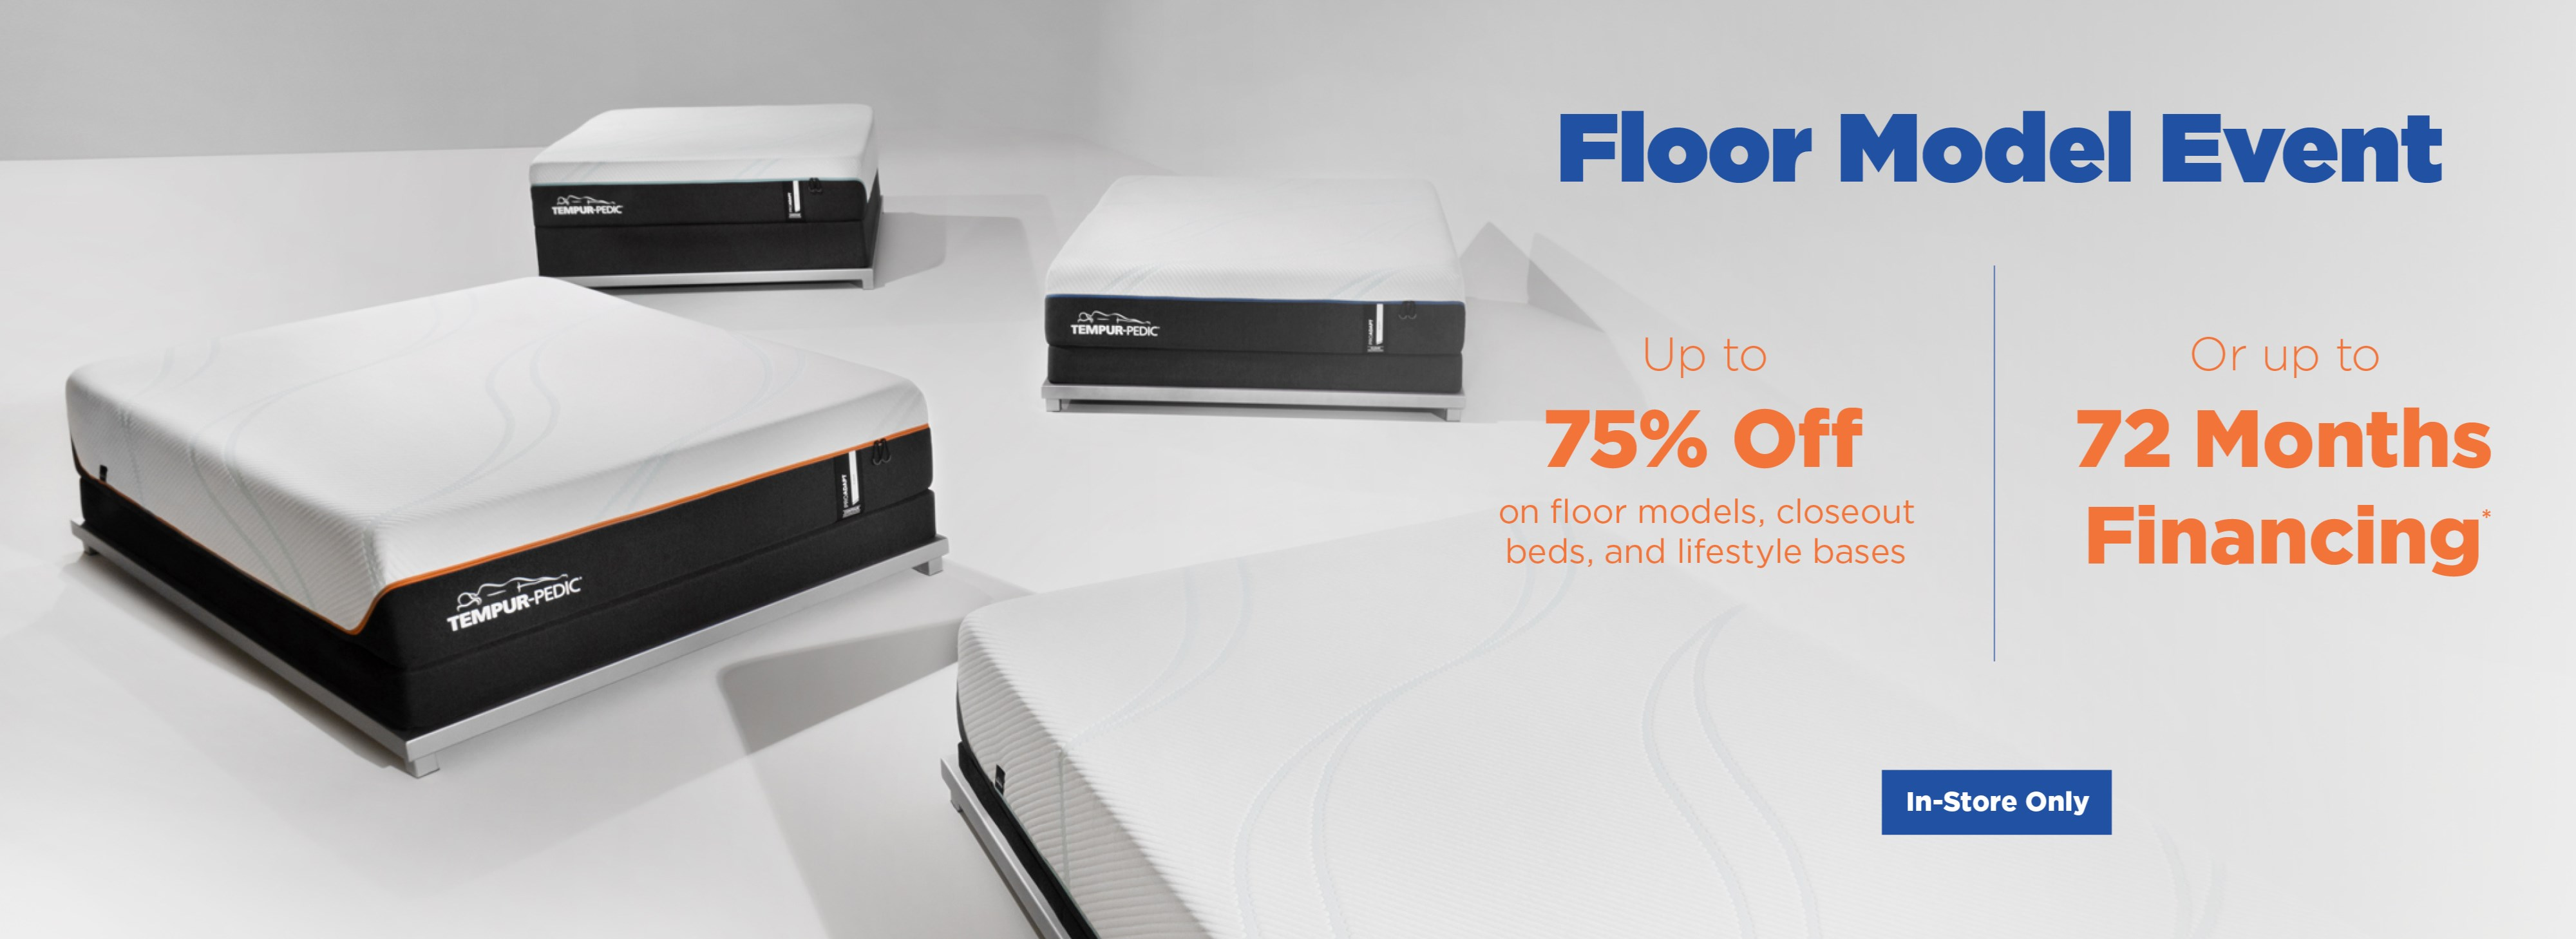 Up to 75% off floor models, closeout beds, and lifestyle bases, or ask about up to 72 months financing; see store for details.